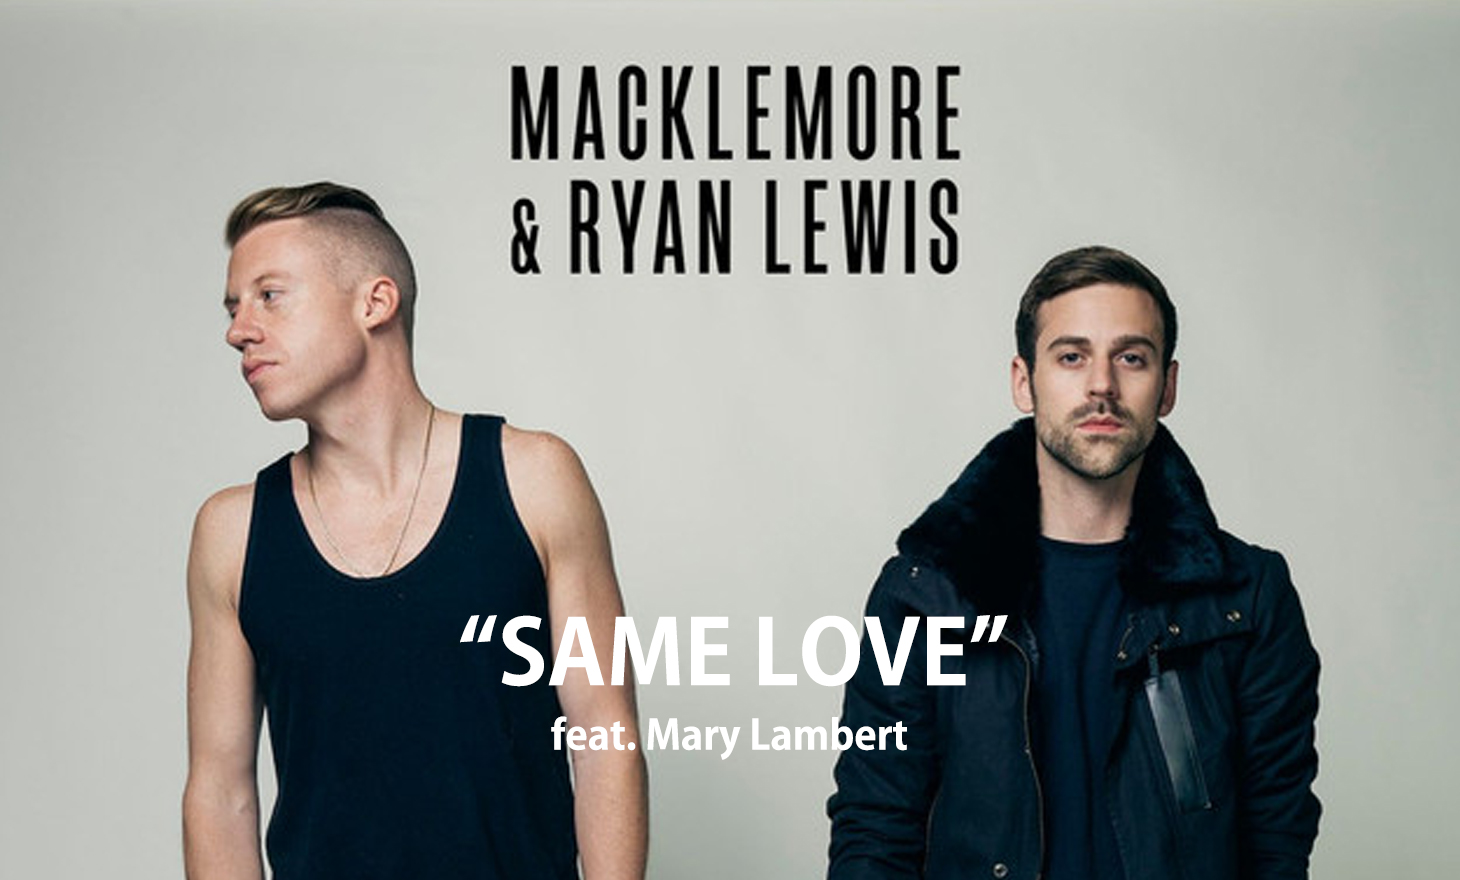 Macklemore & Ryan Lewis : Same Love